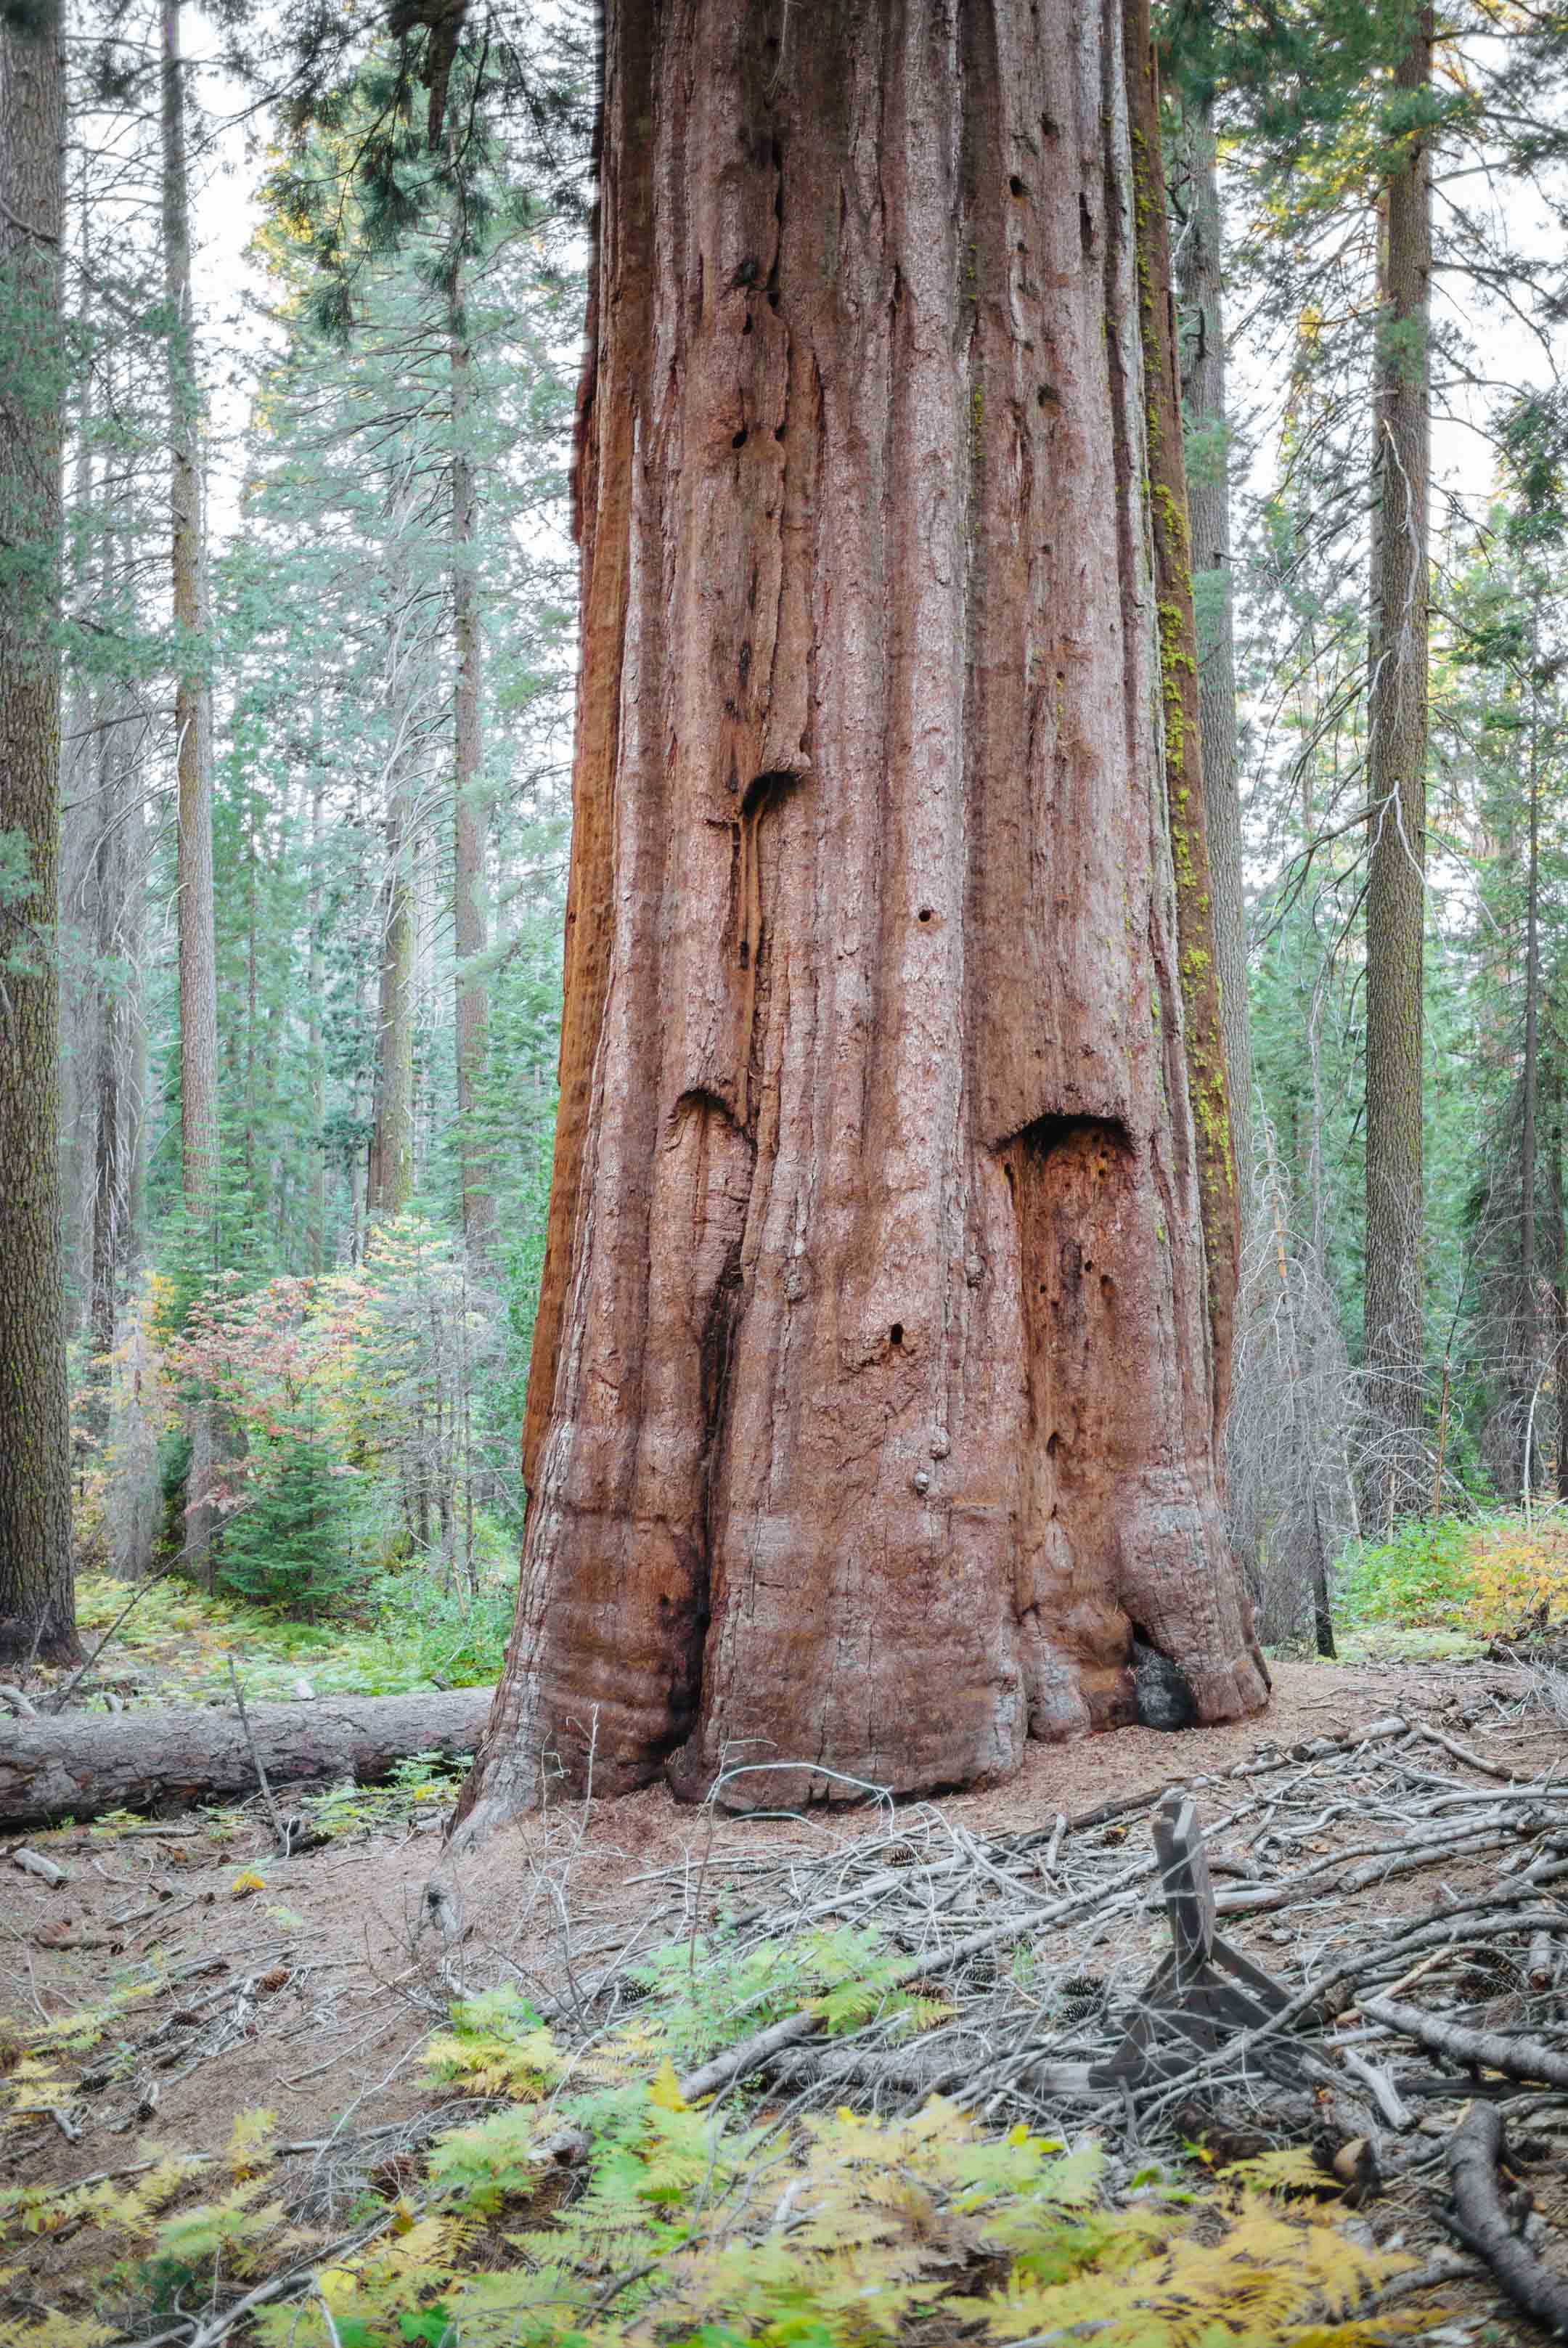 Visit Tuolumne Grove of Giant Sequoias in Yosemite National Park